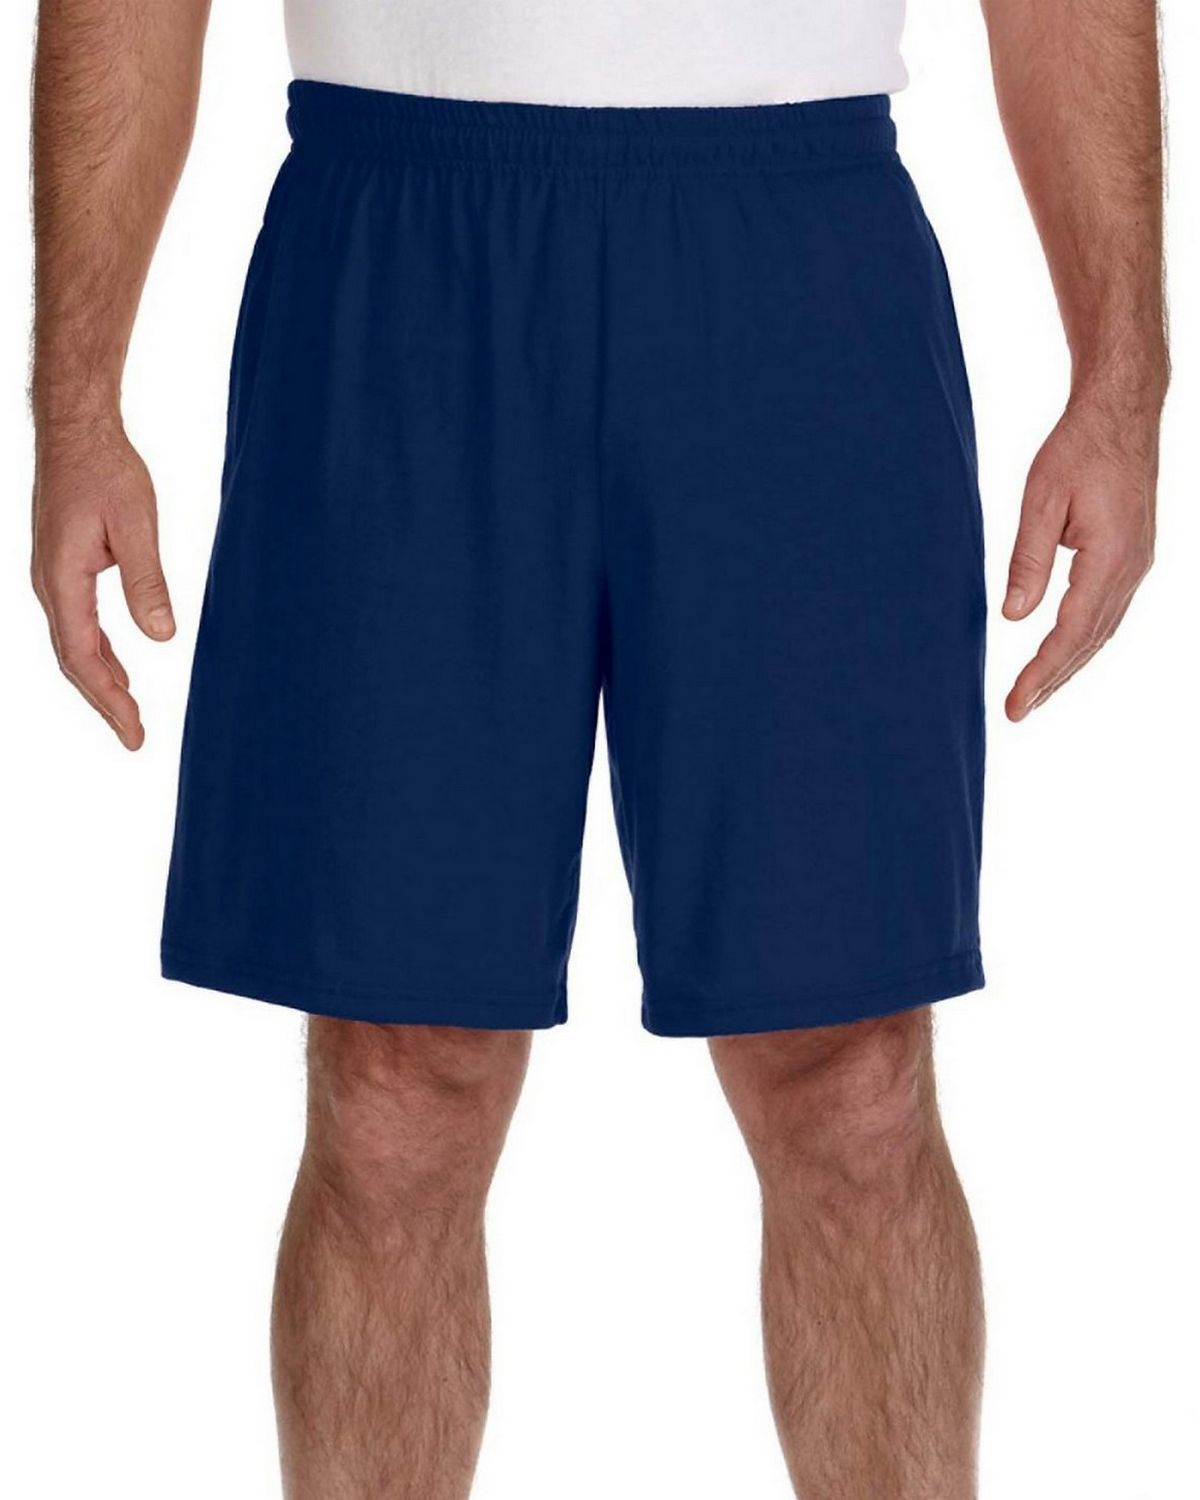 Gildan G44S30 Short with Pocket - Navy - L G44S30